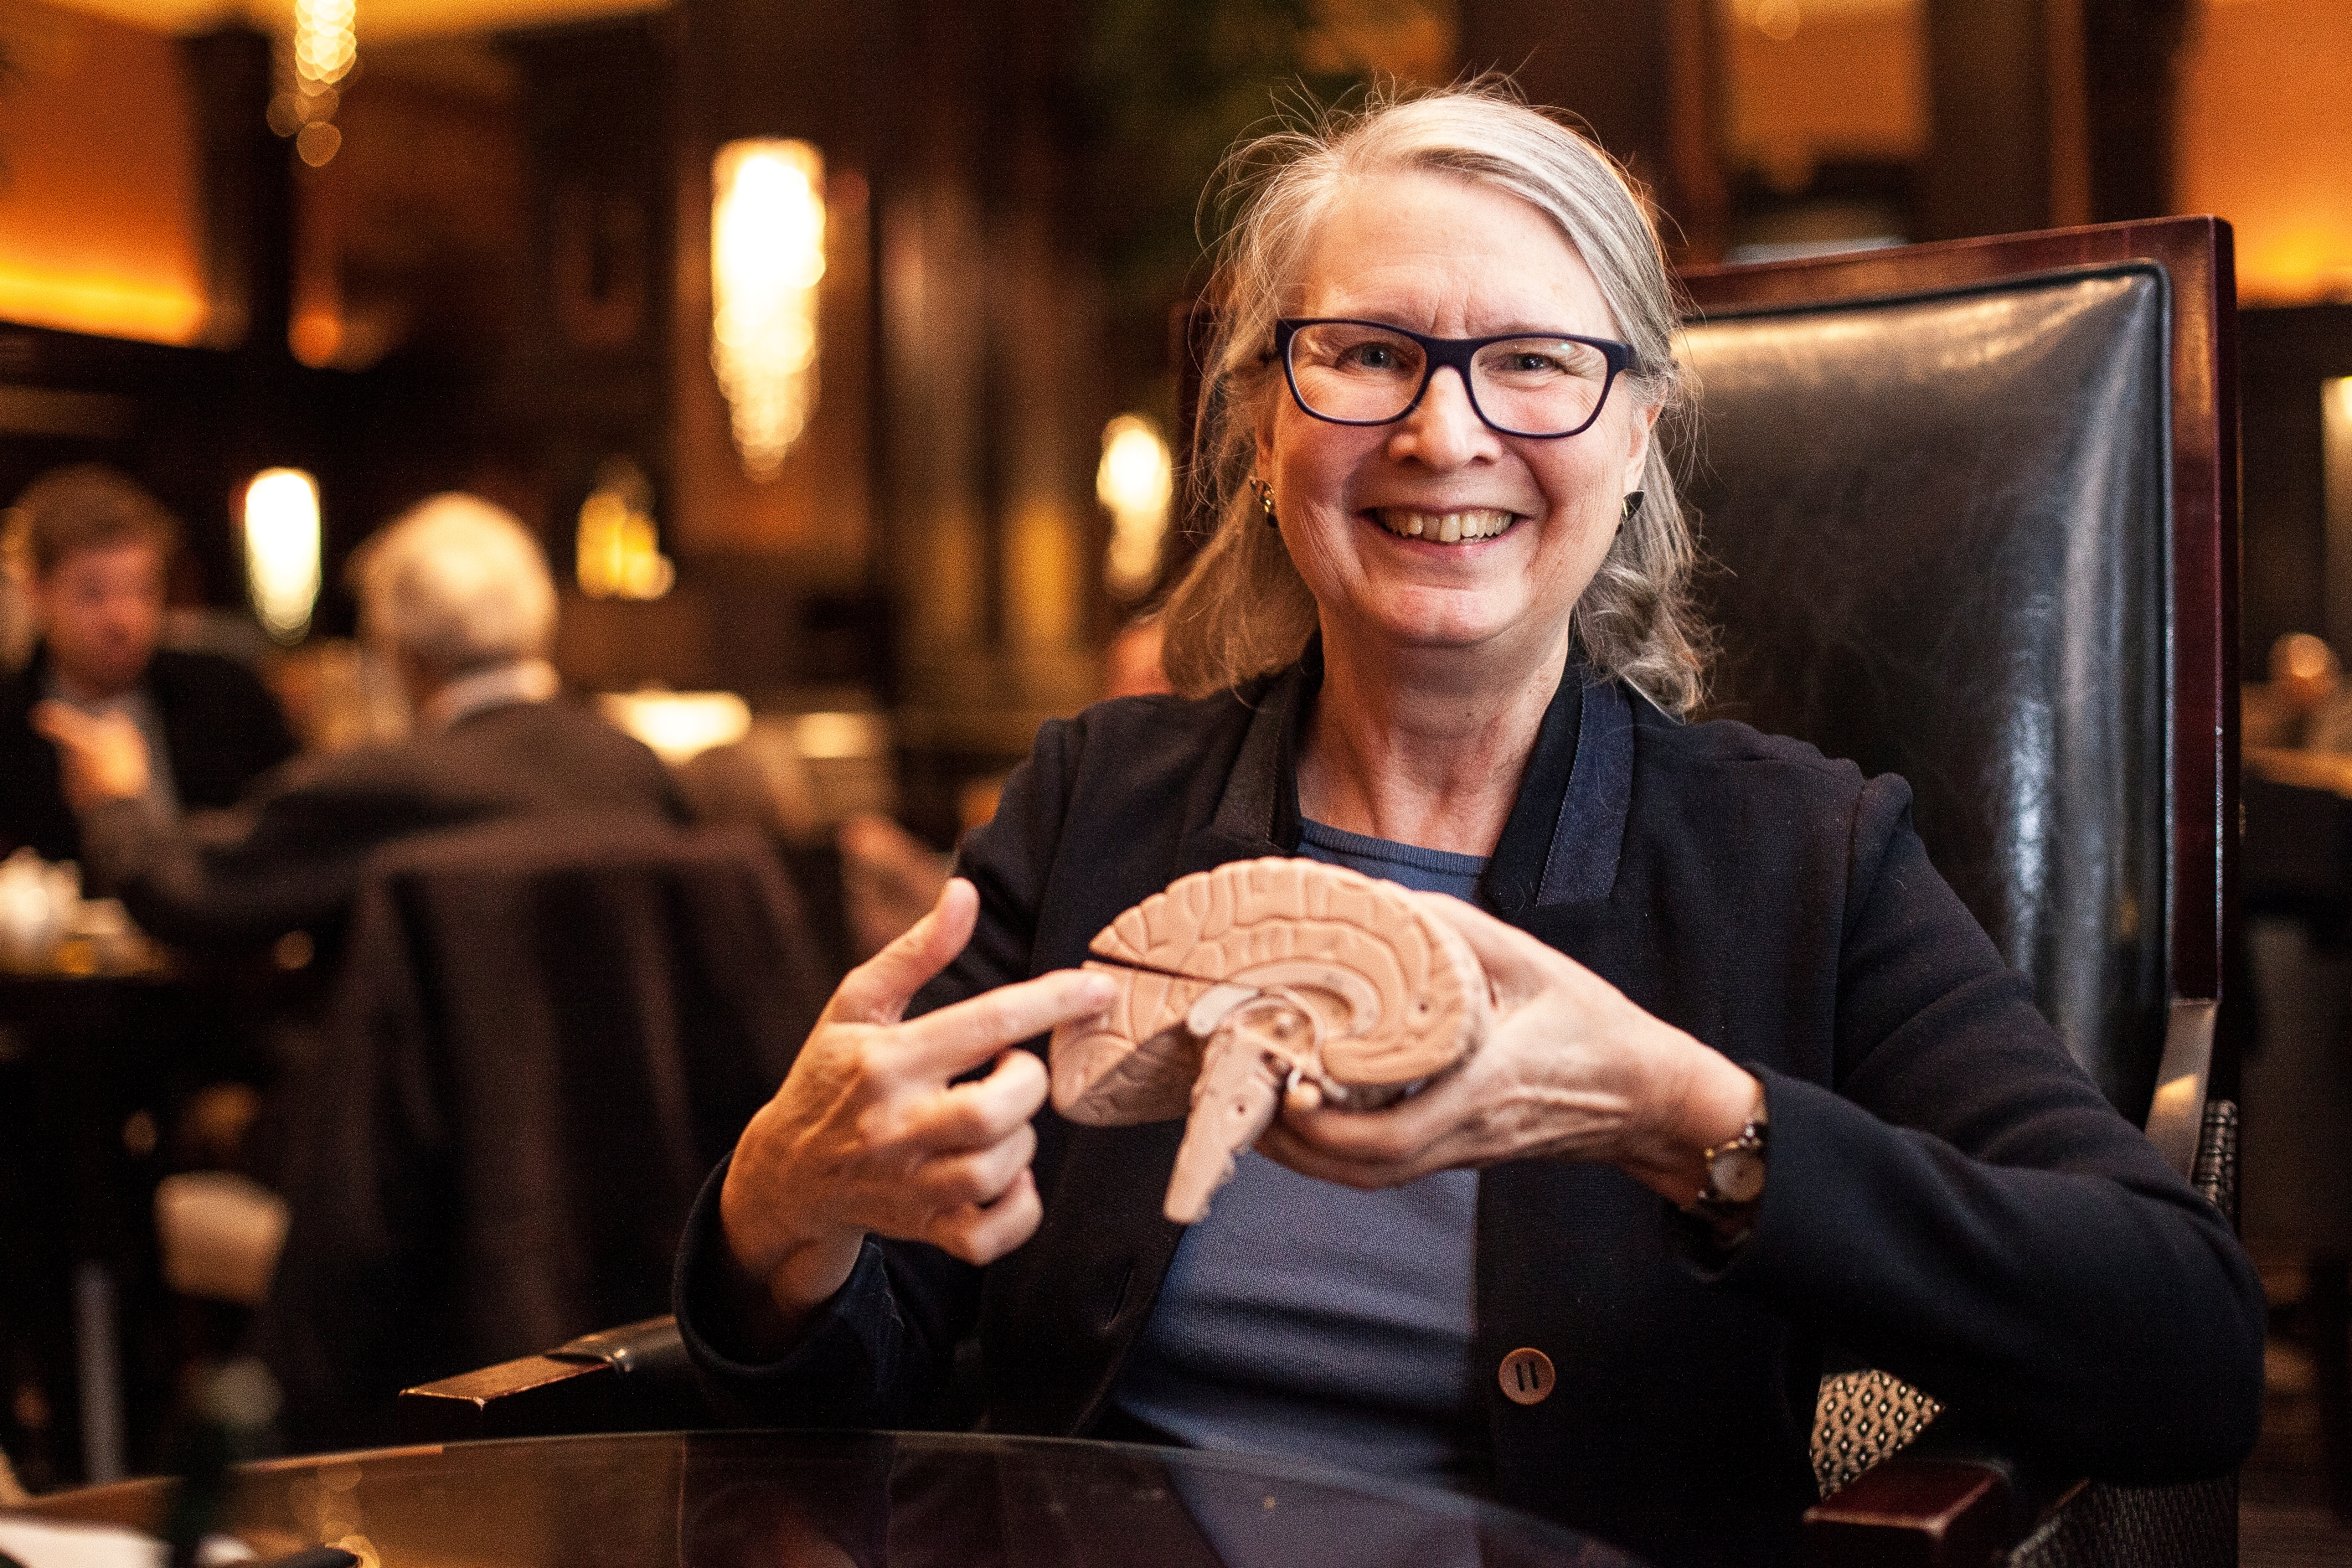 This Is New York: Lucy Brown on the Neuroscience of Love | neuroscience